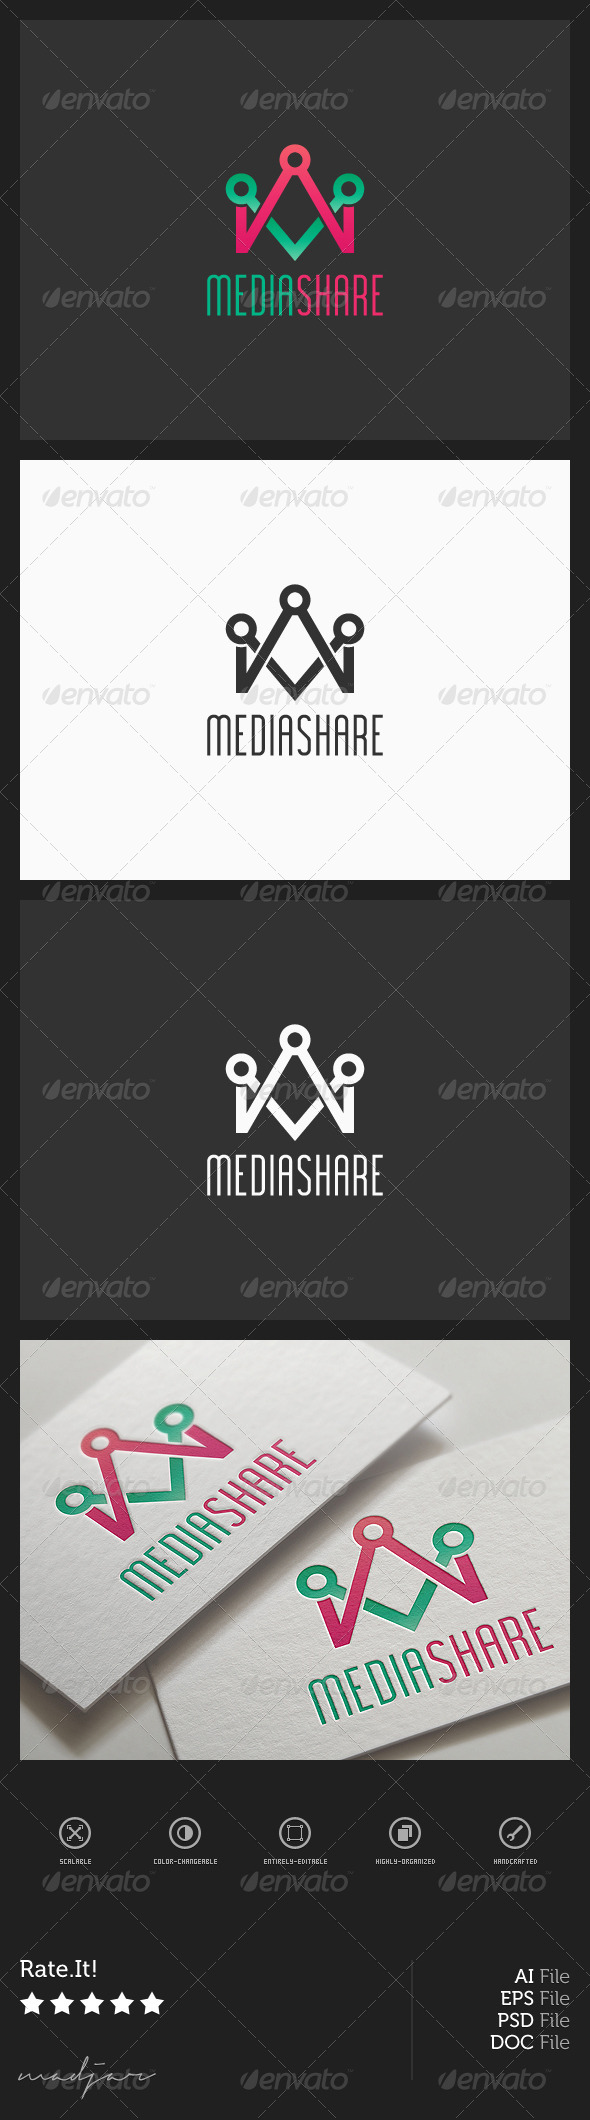 Media Share Logo - Symbols Logo Templates